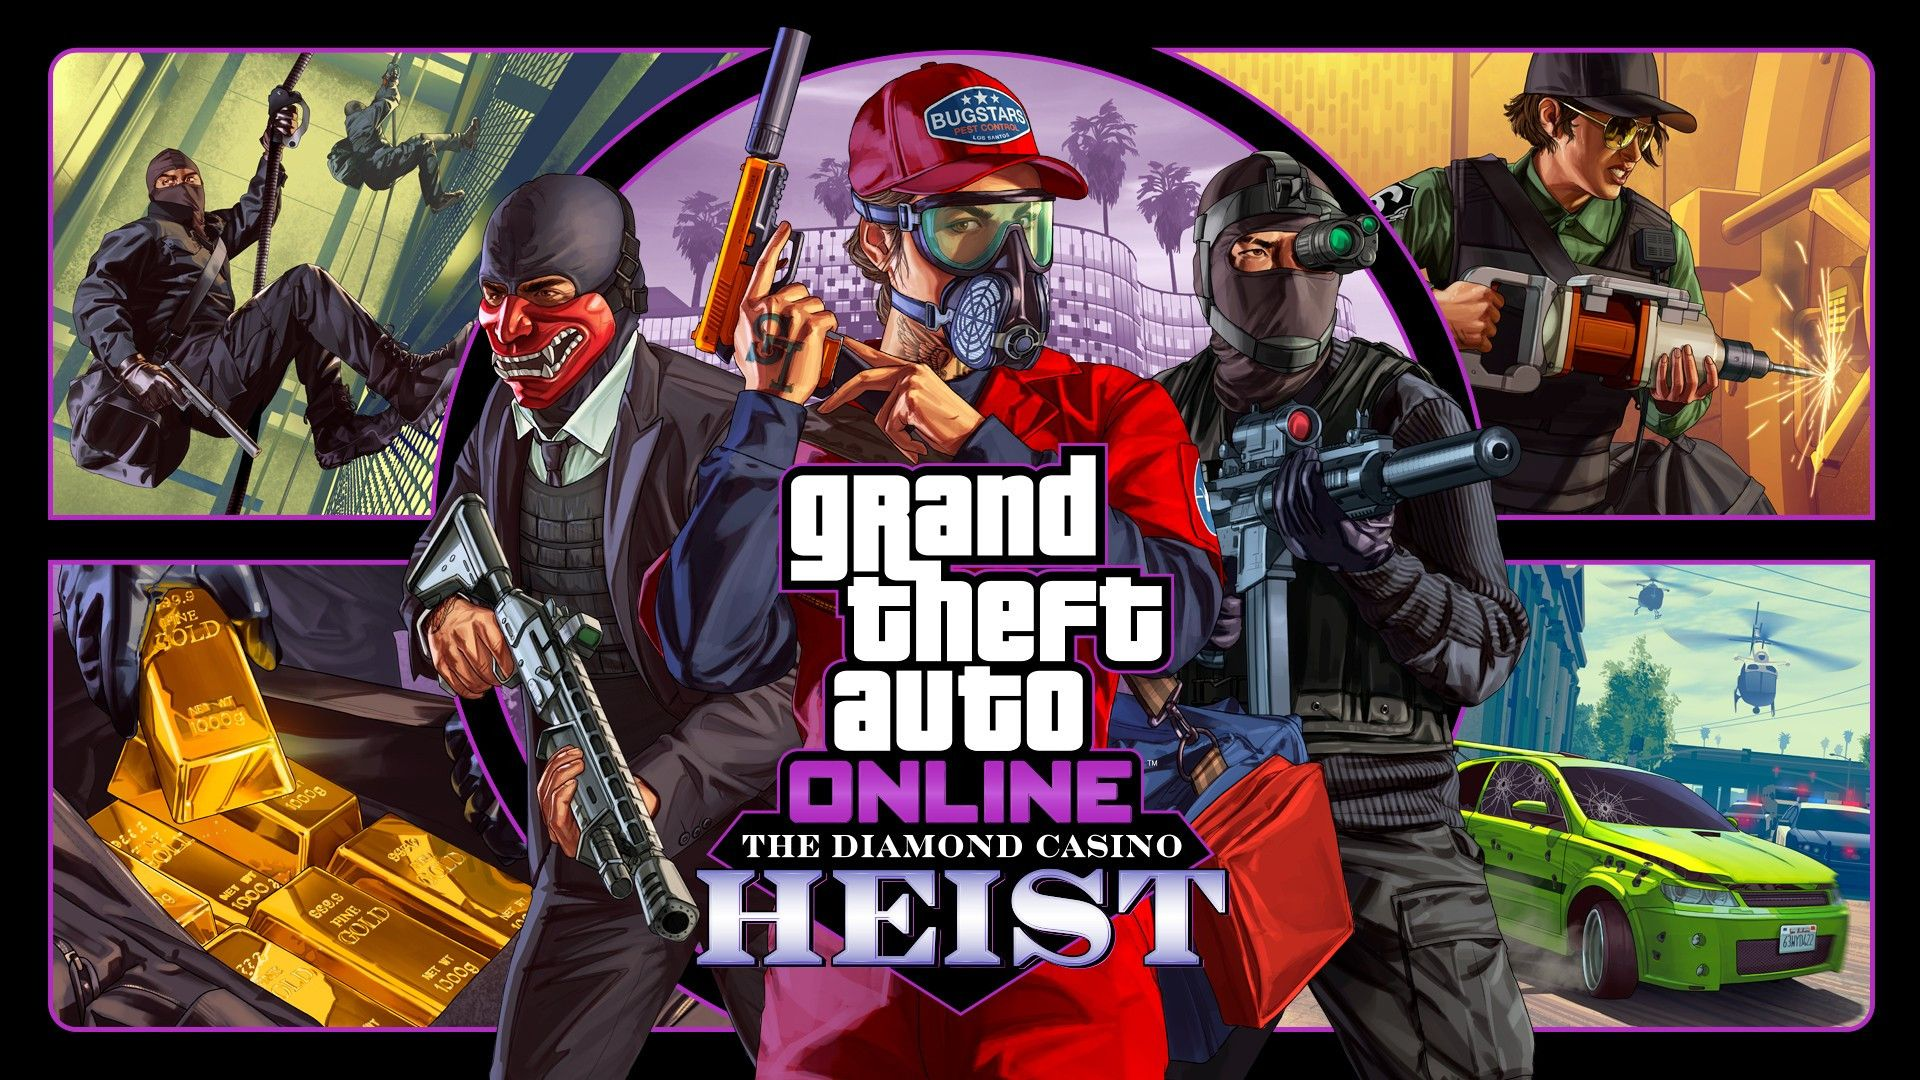 The Diamond Casino Heist Is Now Available In Gta Online On Xbox One Planyour Website Gta Online Grand Theft Auto Casino Gta v diamond casion heist wallpaper